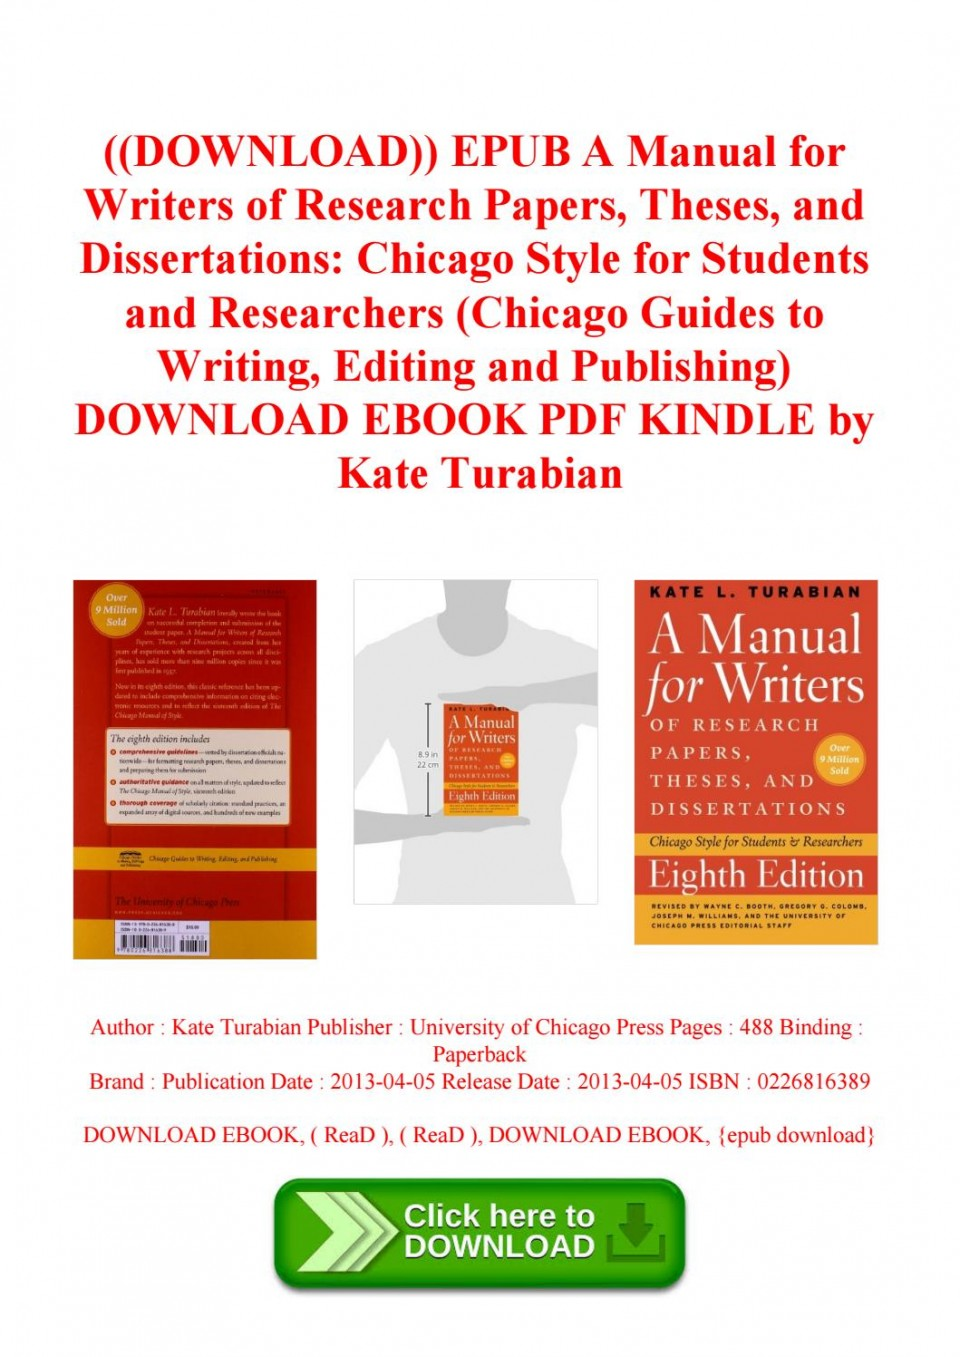 006 Page 1 Research Paper Manual For Writers Of Papers Theses And Sensational A Dissertations Ed. 8 8th Edition Ninth Pdf 960